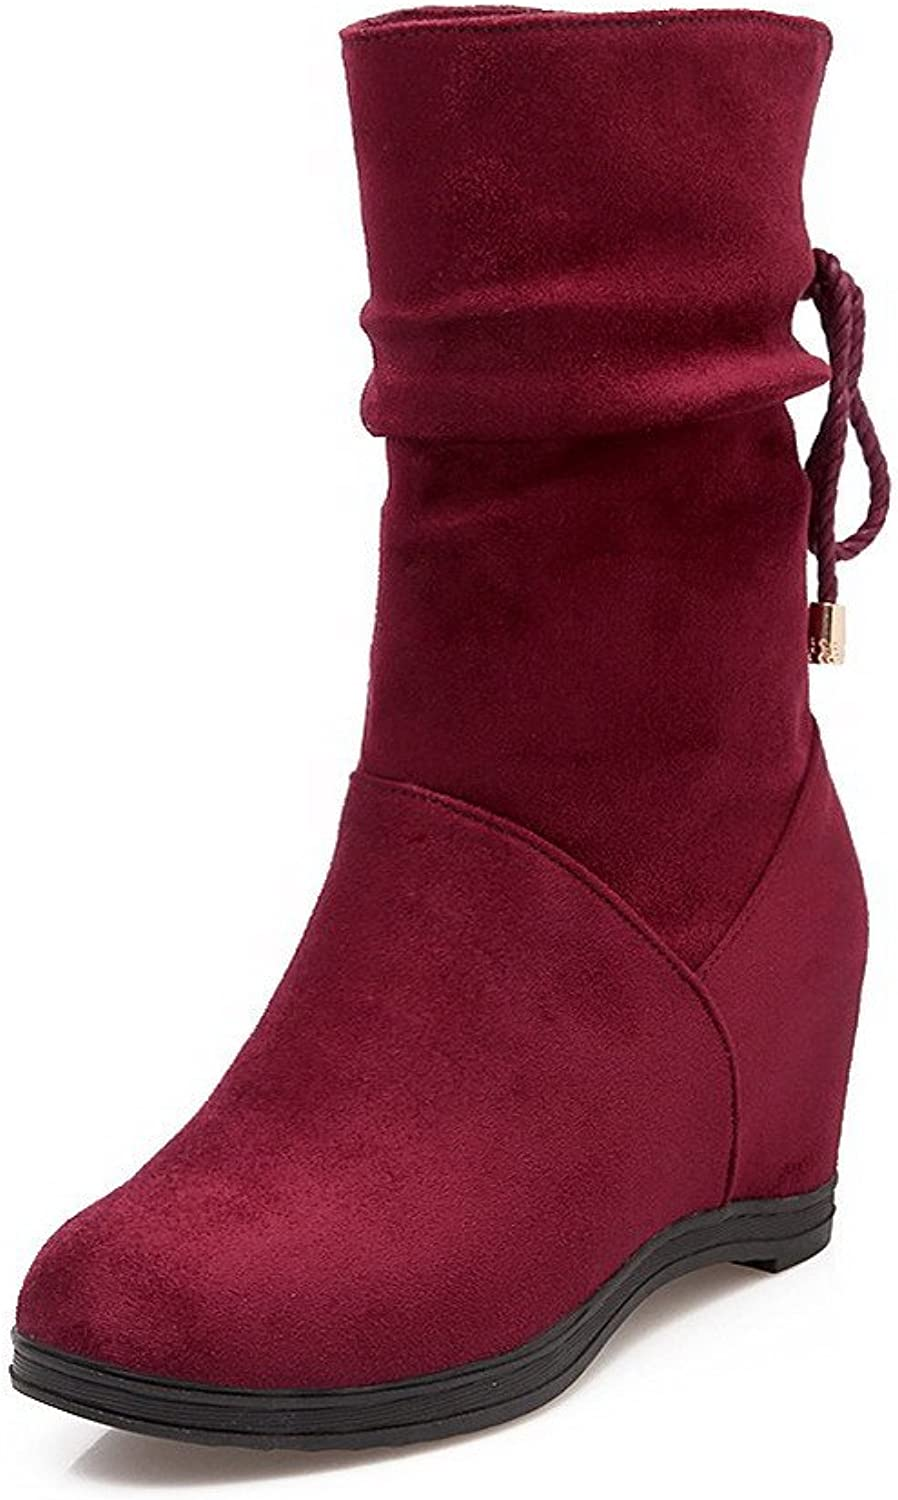 AllhqFashion Women's Mid Top Lace up High Heels Round Closed Toe Boots